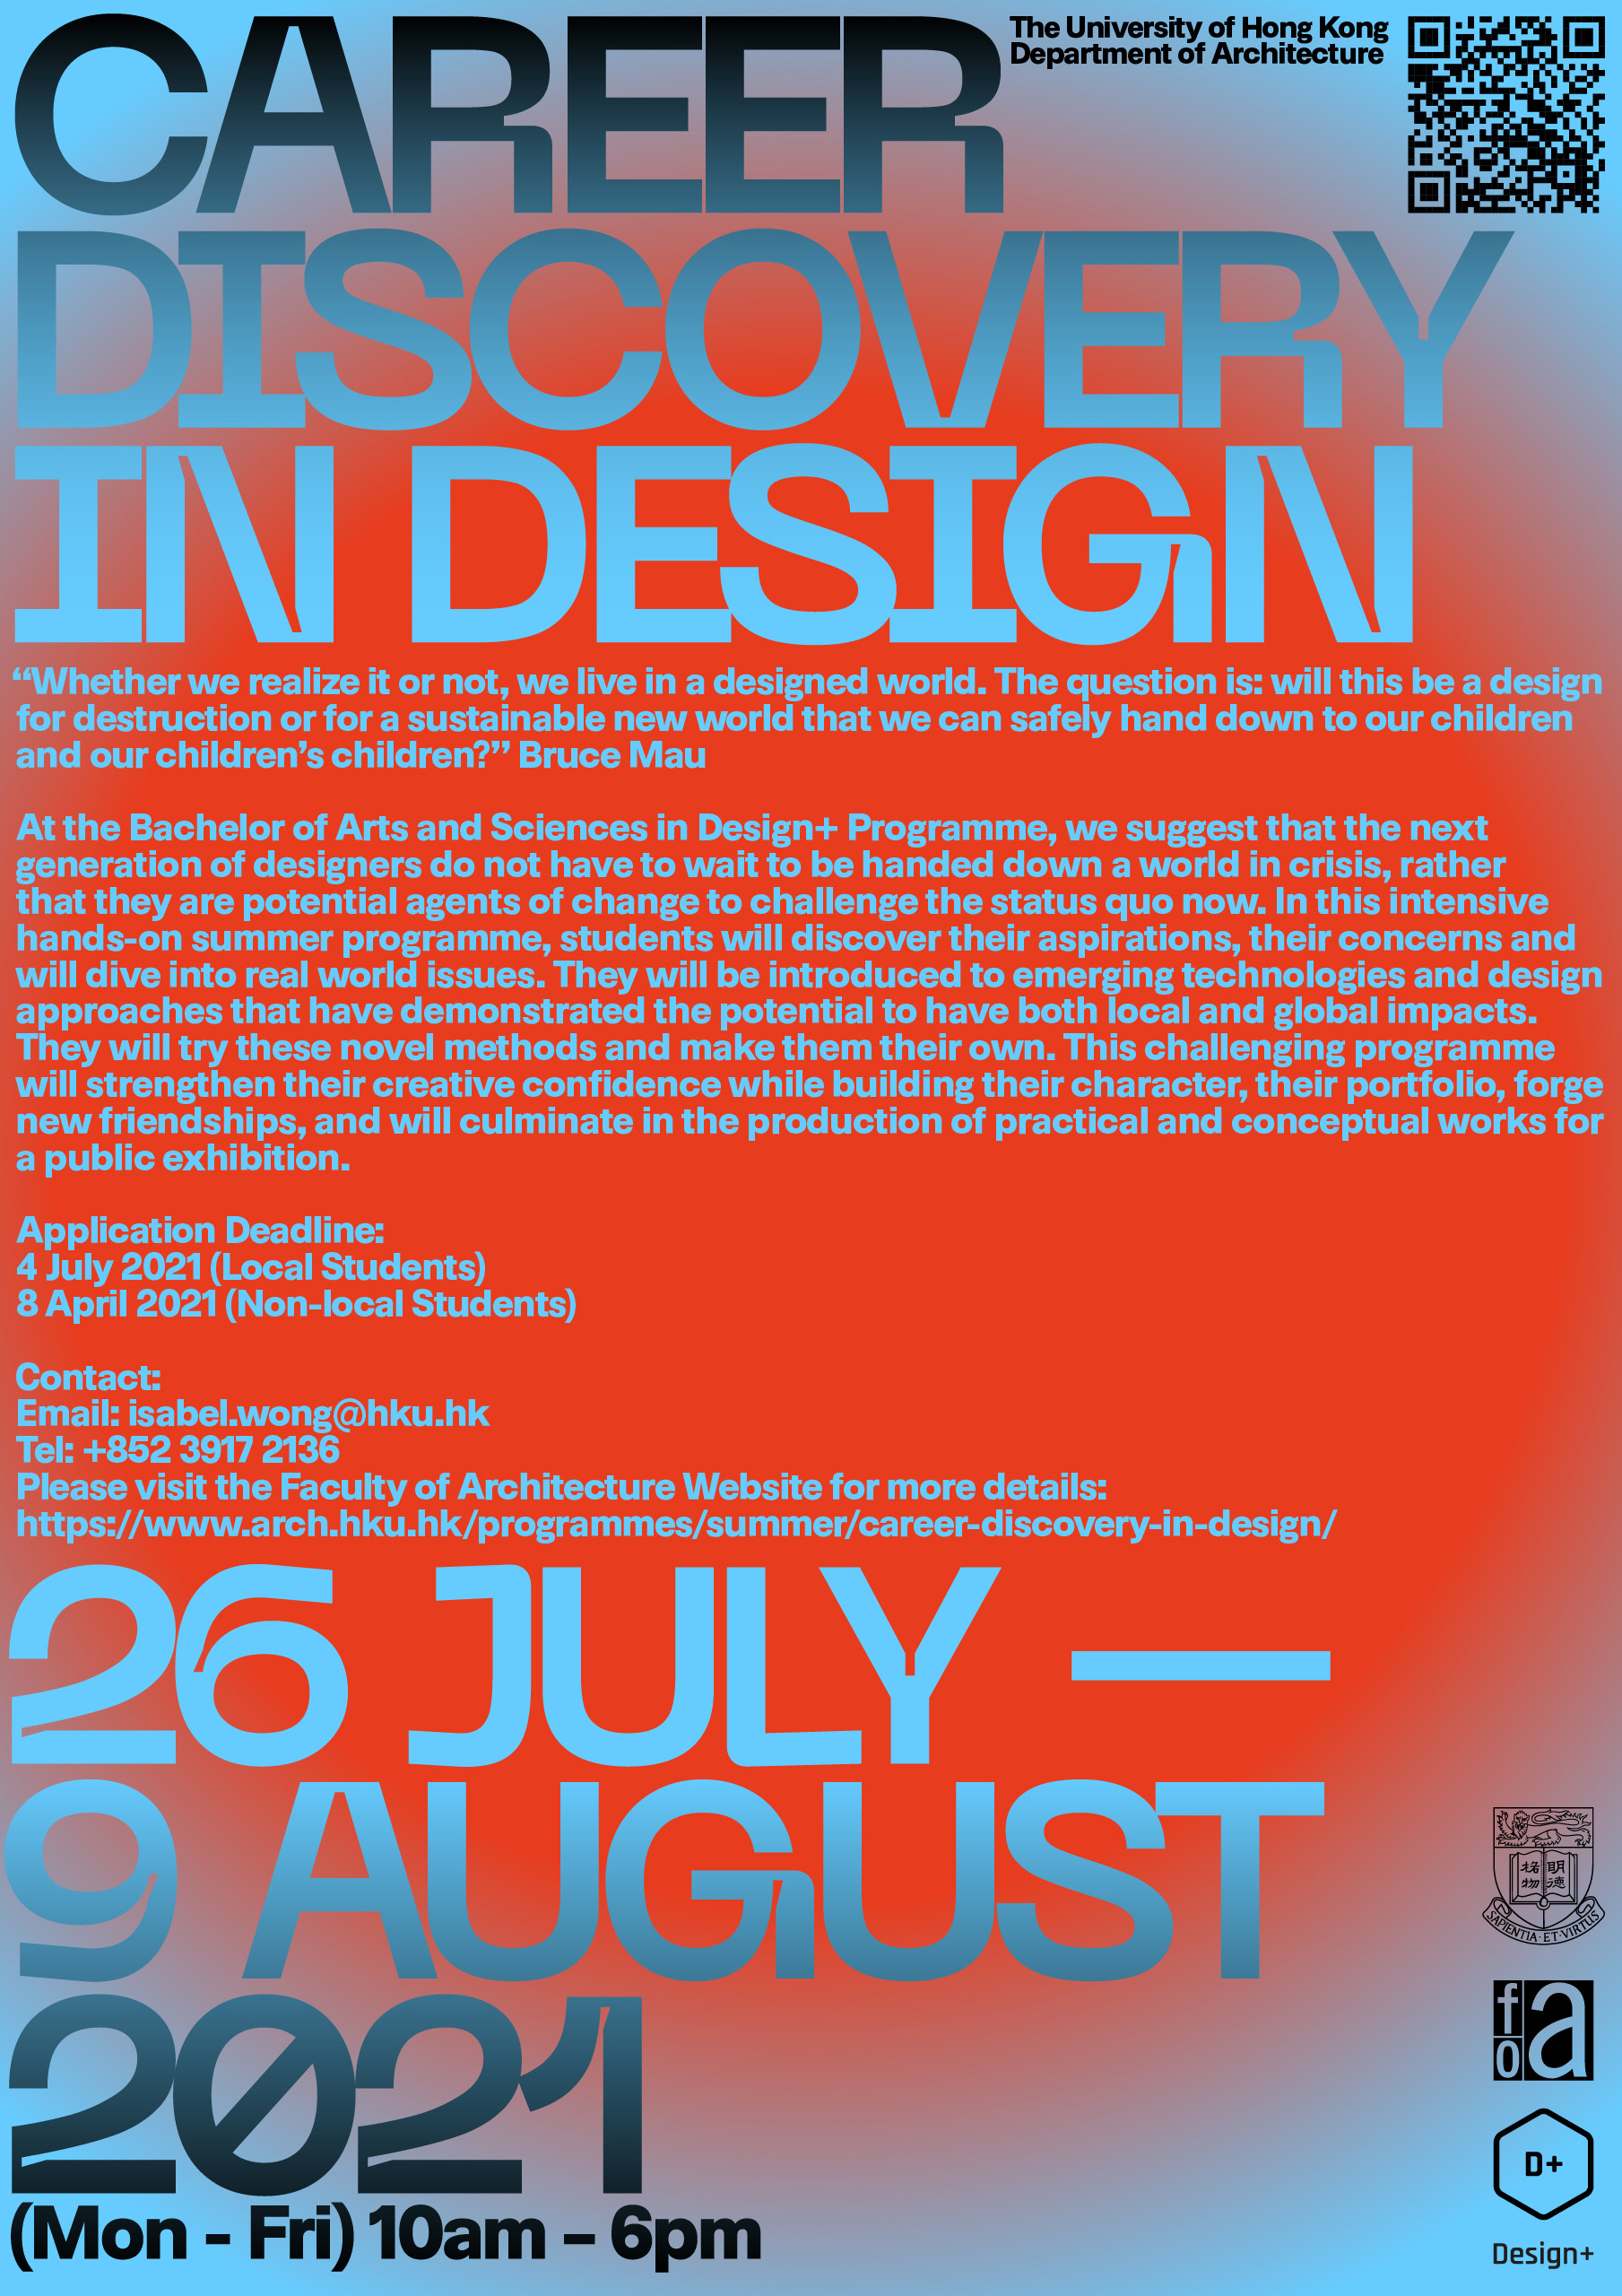 Career Discovery in Design 2021